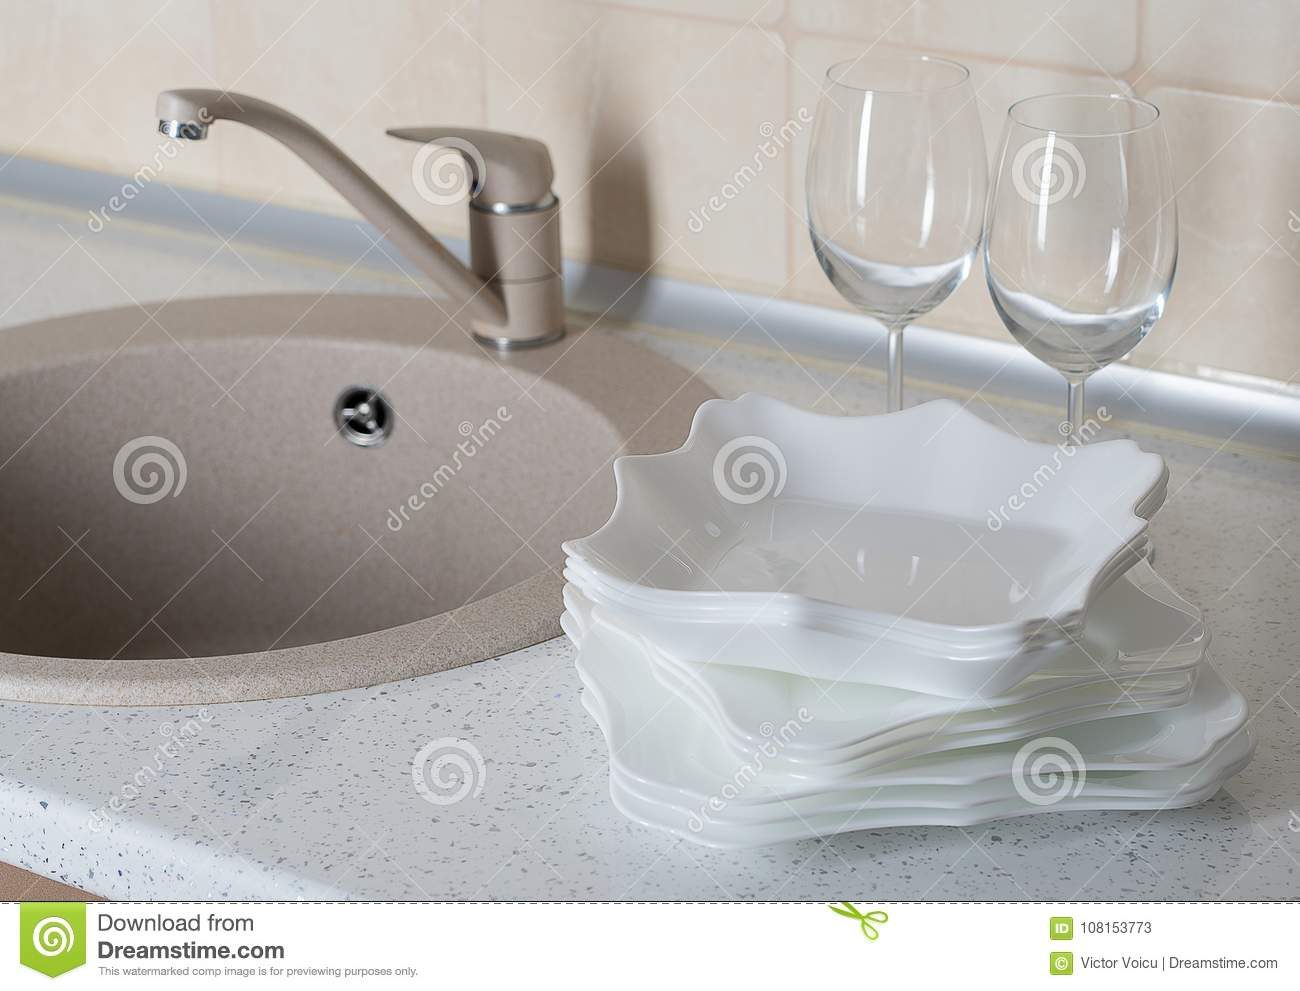 Kitchen Sink With Clean Dishware Stock Image Image Of Dishware